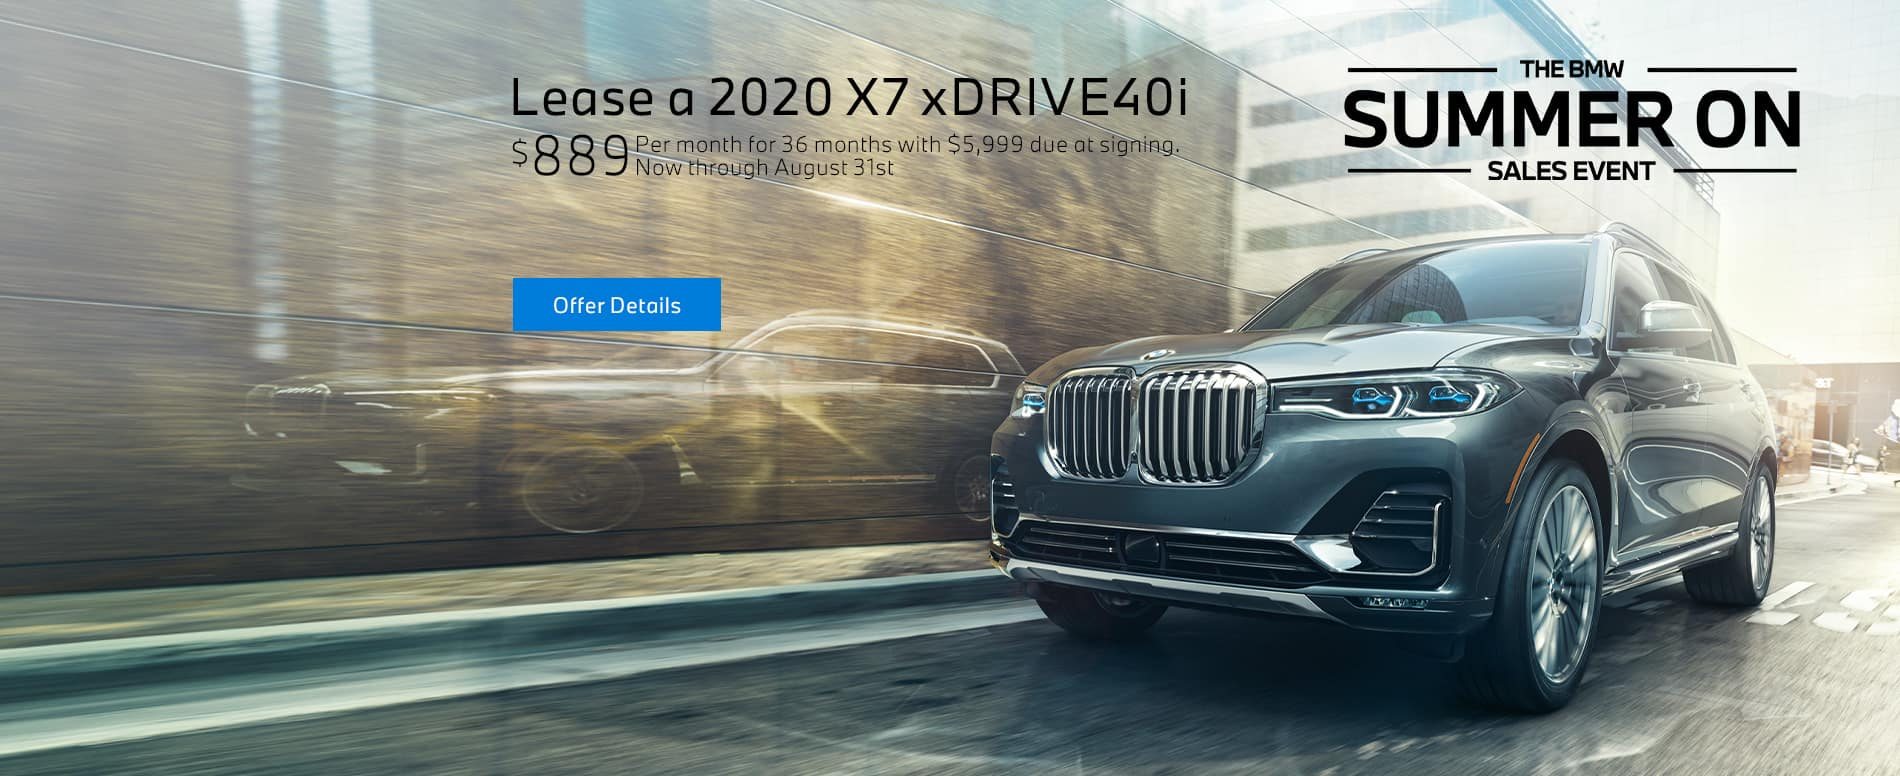 2020 BMW X7 xDrive40i at BMW of Fort Walton Beach!